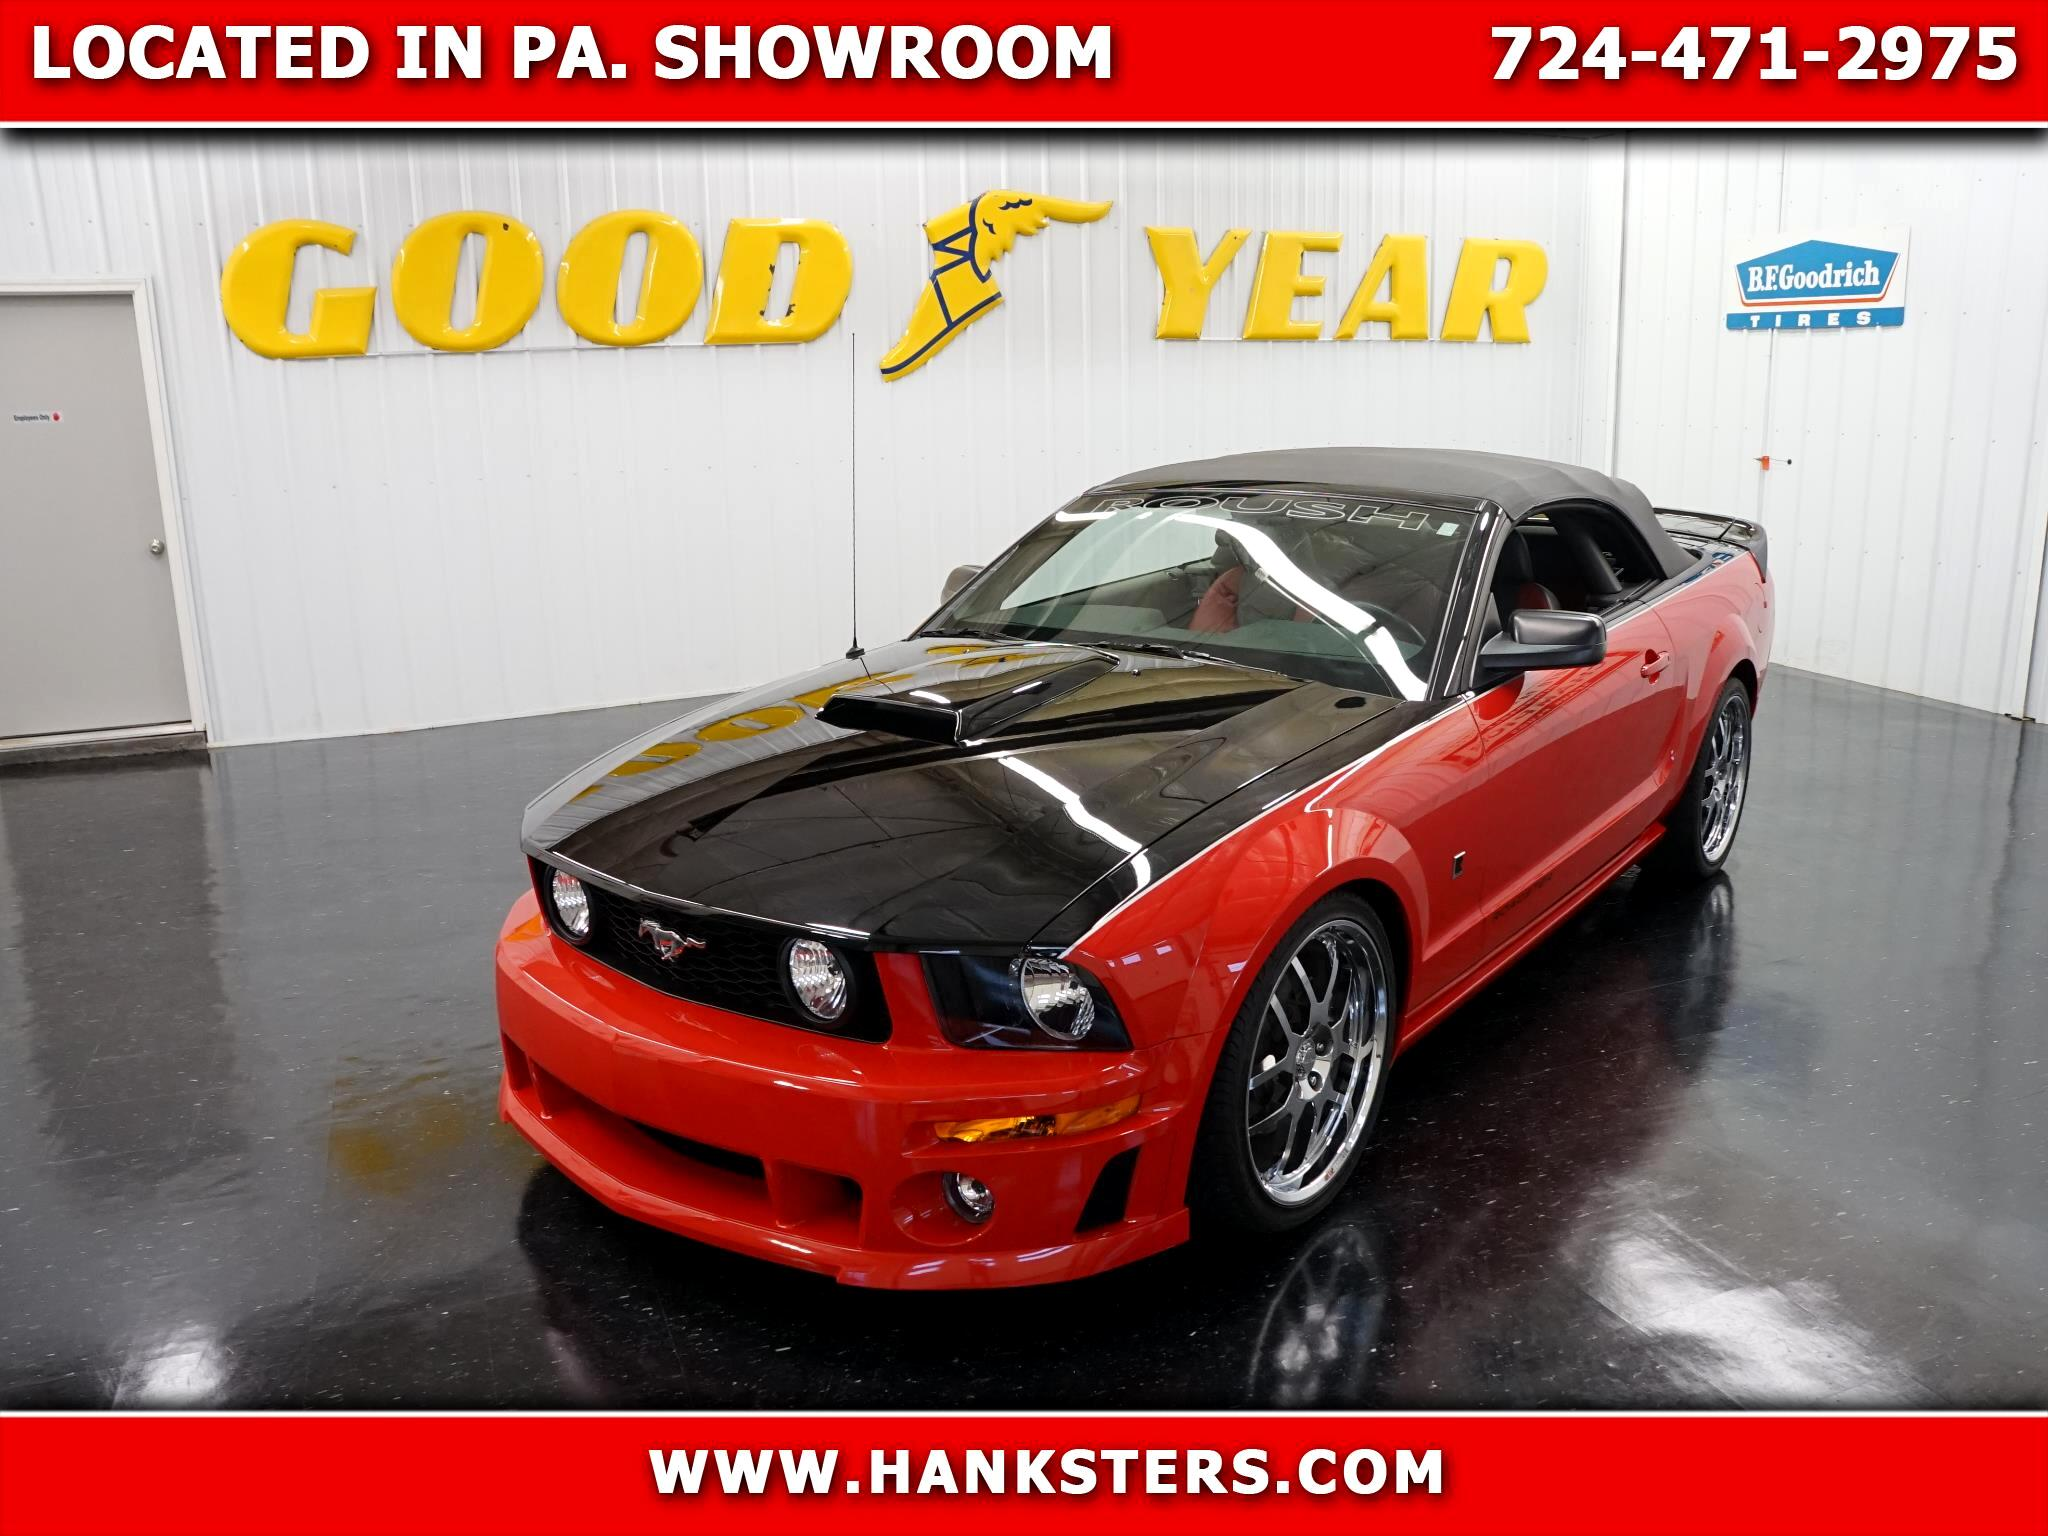 2007 Ford Mustang Roush Roadster Stage III Convertible